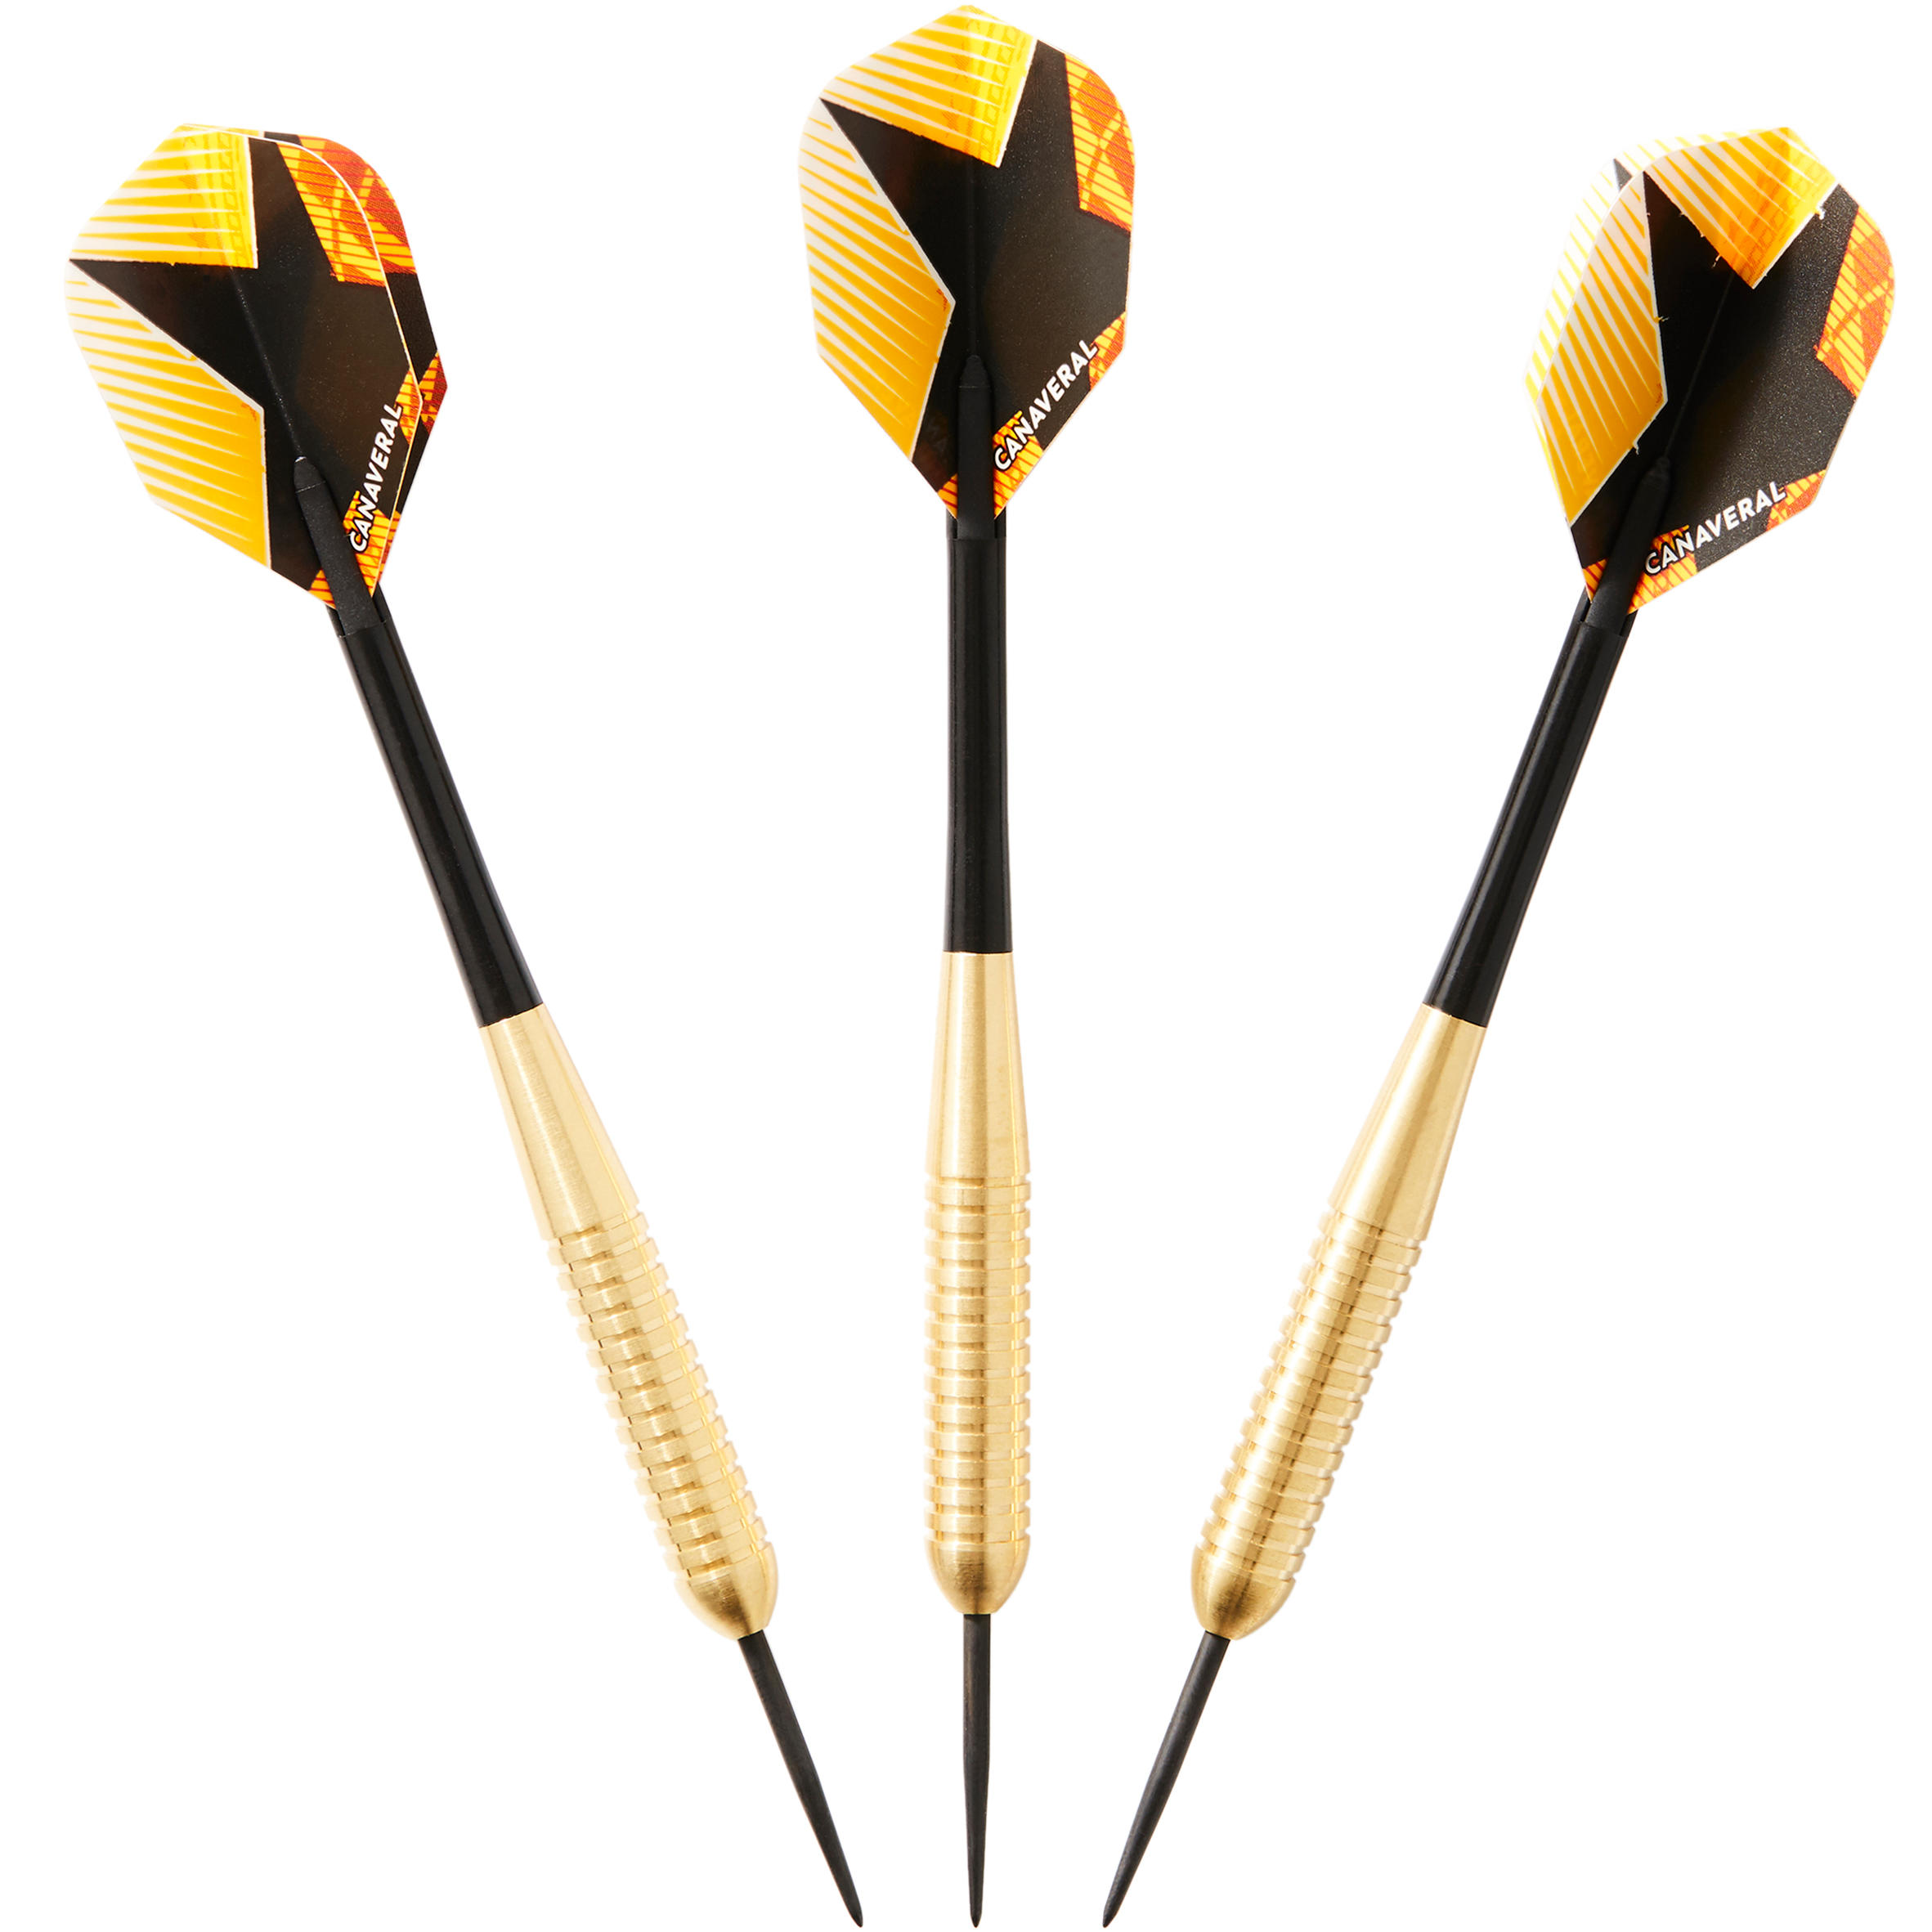 T500 Canaveral Steel-Tipped Darts Tri-Pack